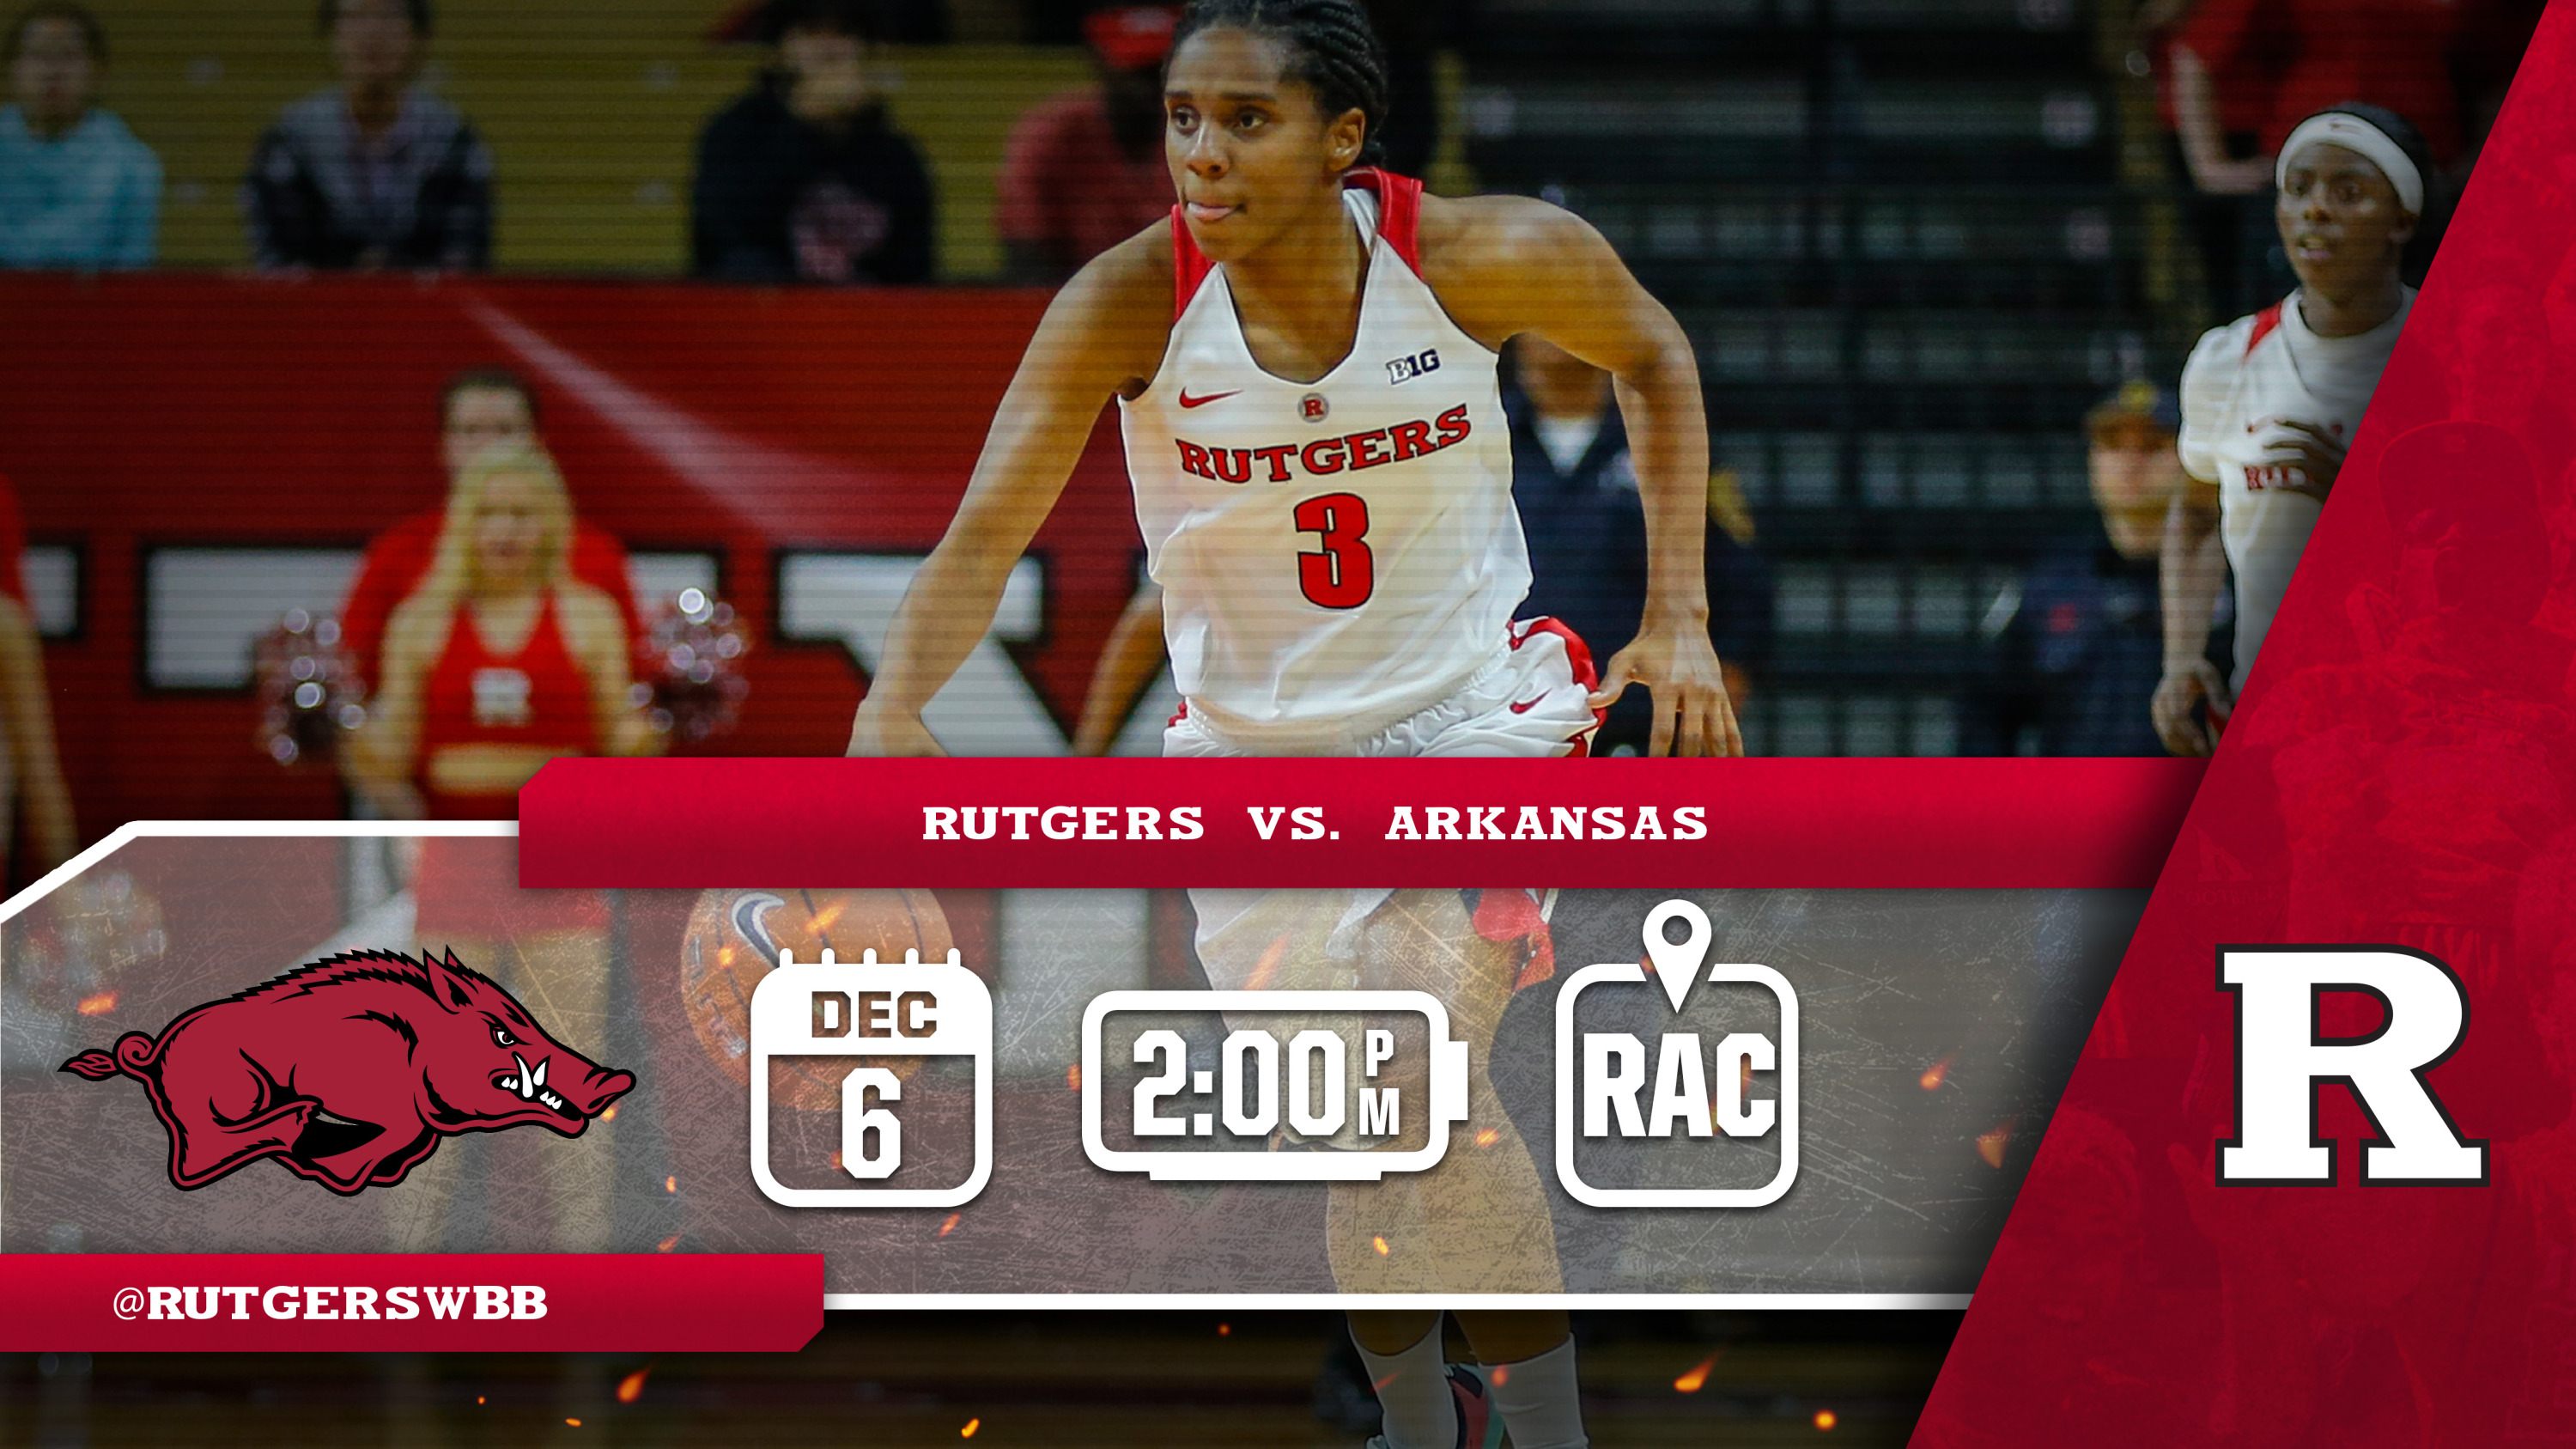 WBB Begins Five Game Homestand with Arkansas The ficial Site